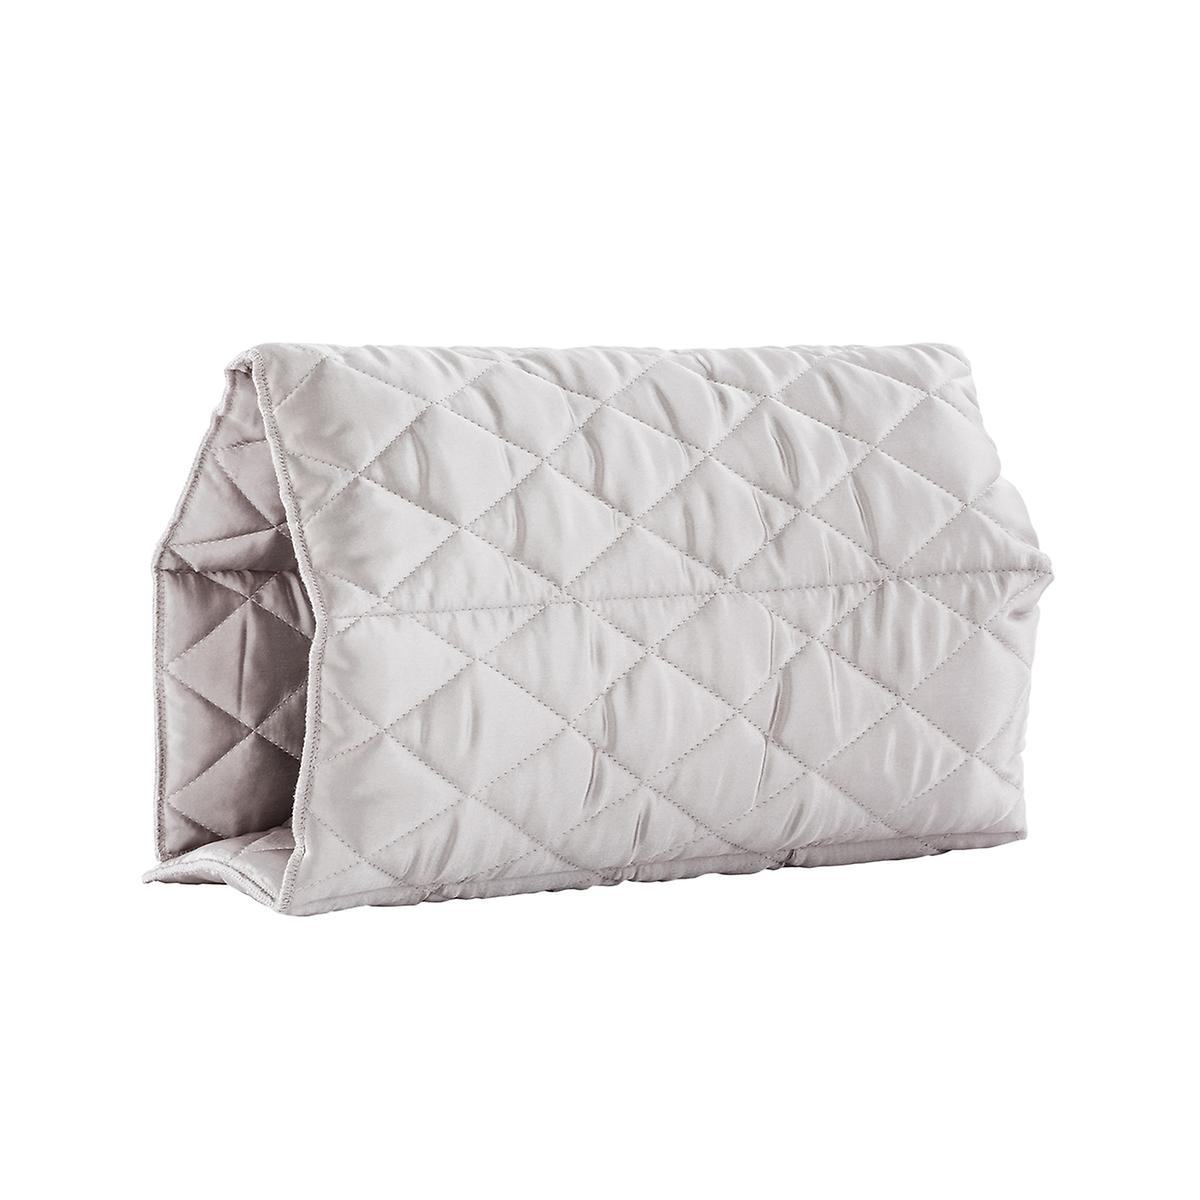 5ee55b1632a8 Innies Quilted Purse Shapers